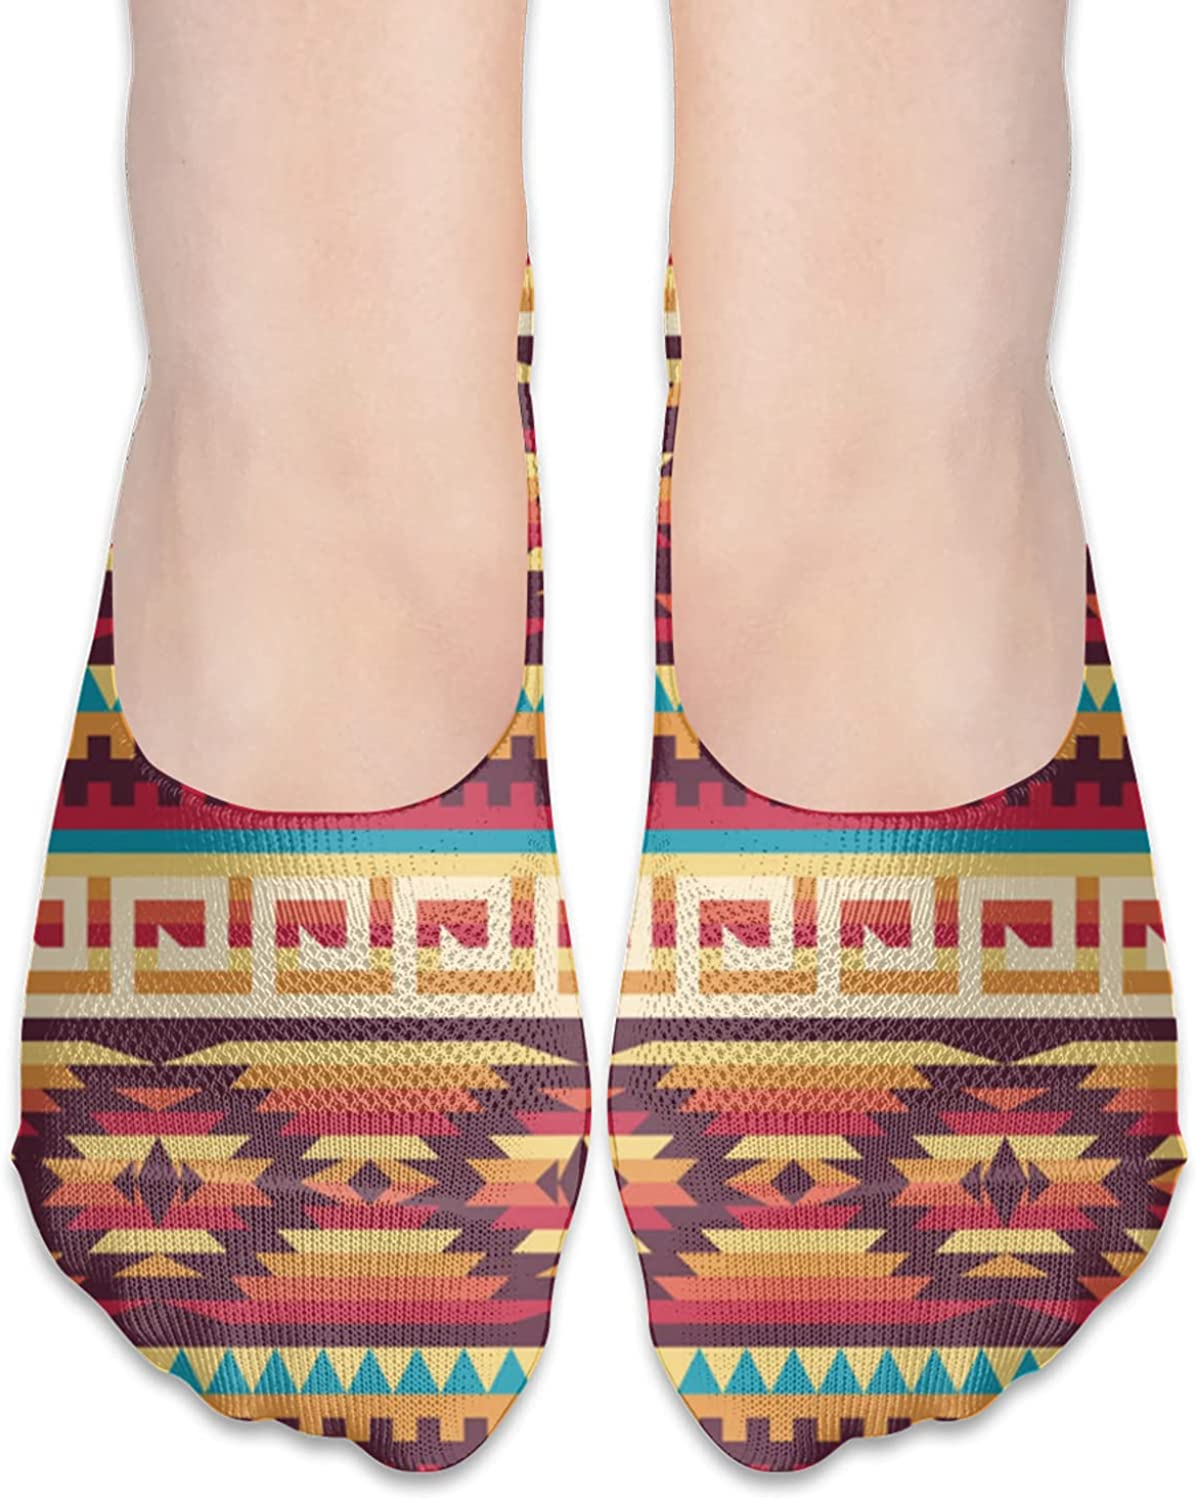 Native American Unisex Adult Breathable Liner Socks Non Slip No Show Ankle Socks Low Cut Invisible Socks